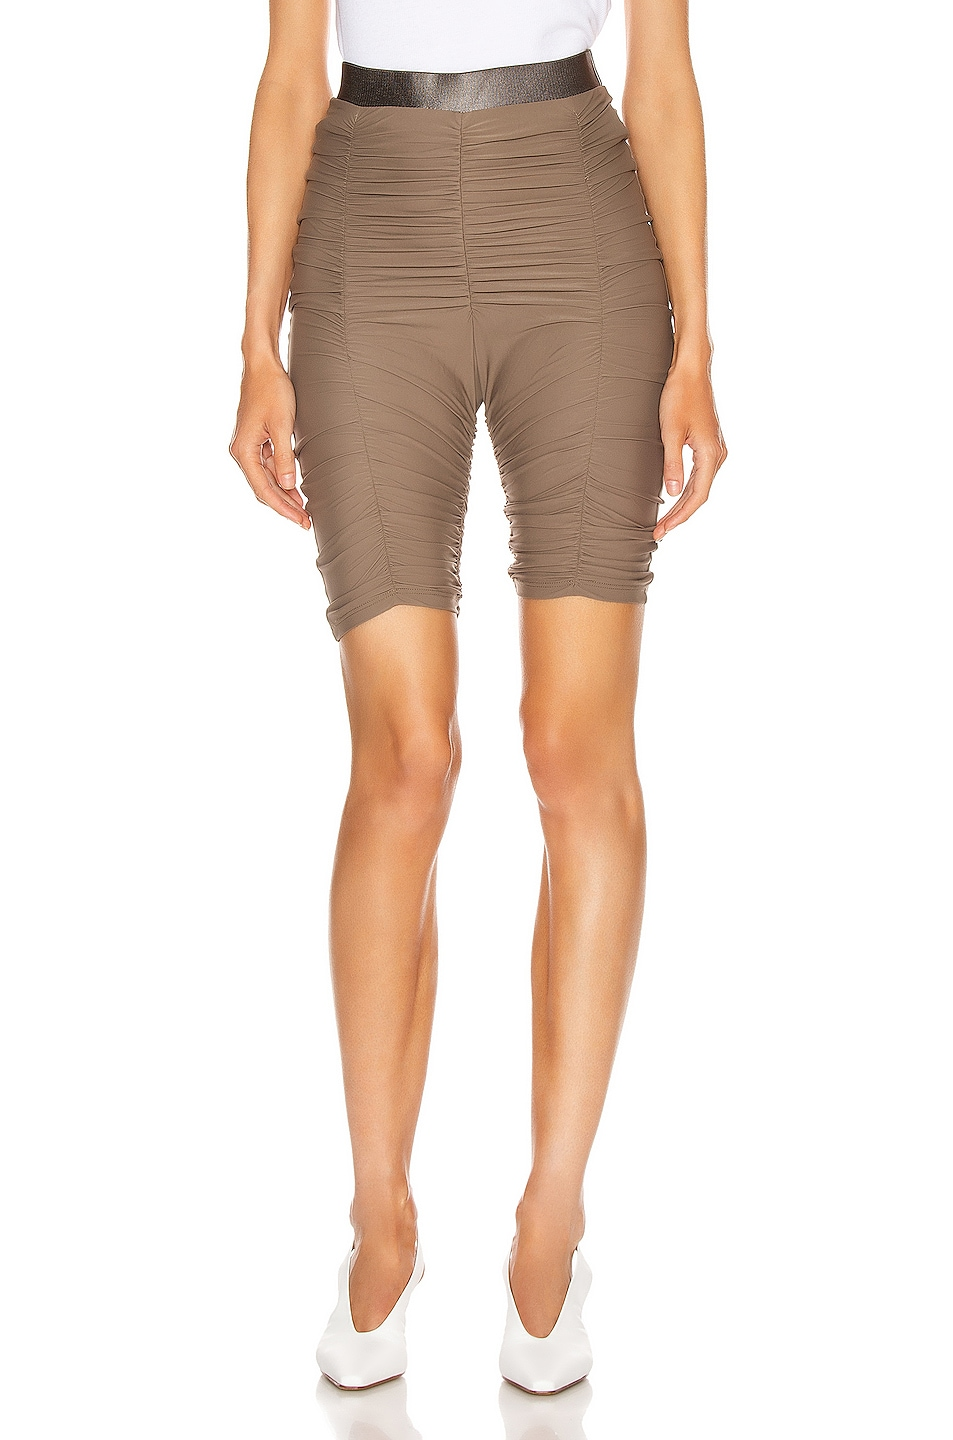 Image 1 of ALIX NYC Nixon Skin Biker Short in Army